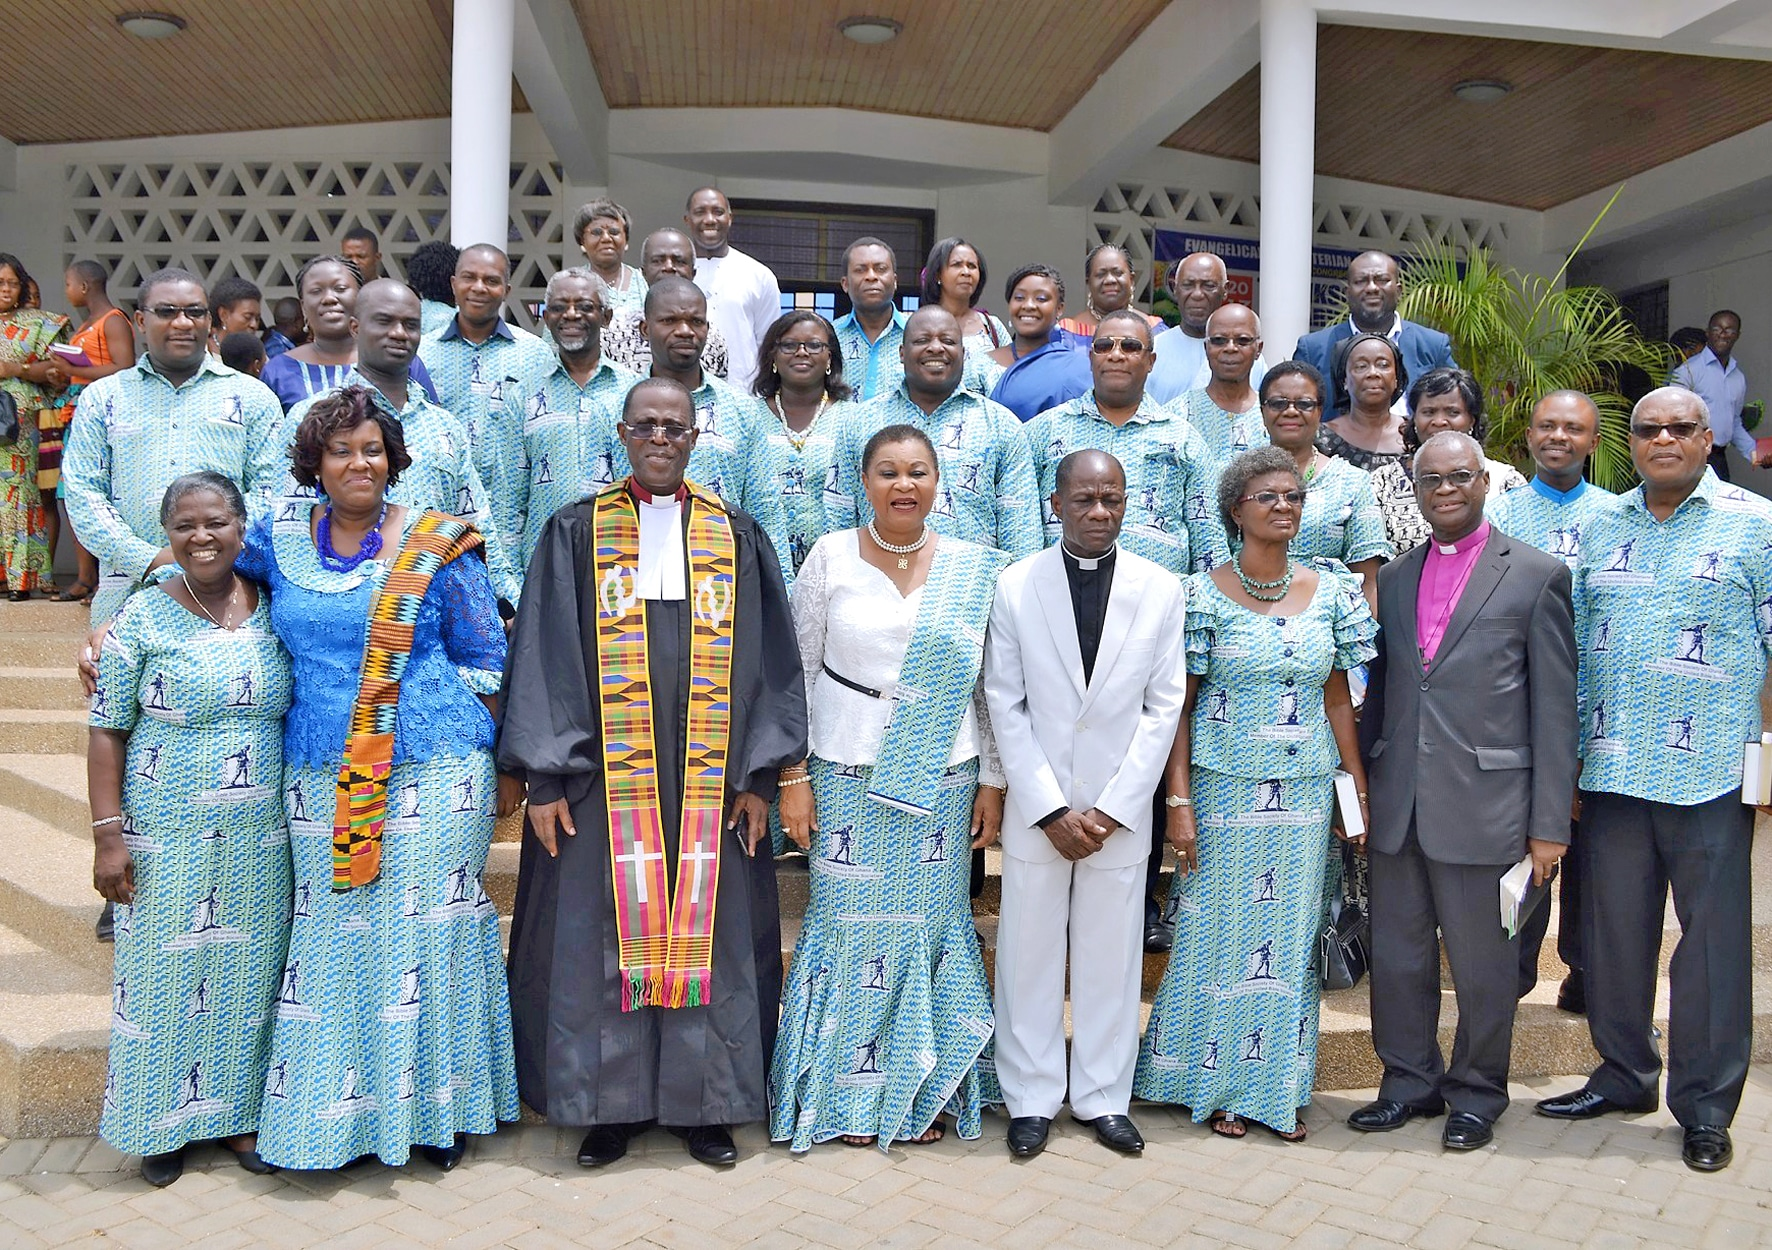 Leaders must learn to exit honourably – Most Rev. Dr. Aboagye-Mensah